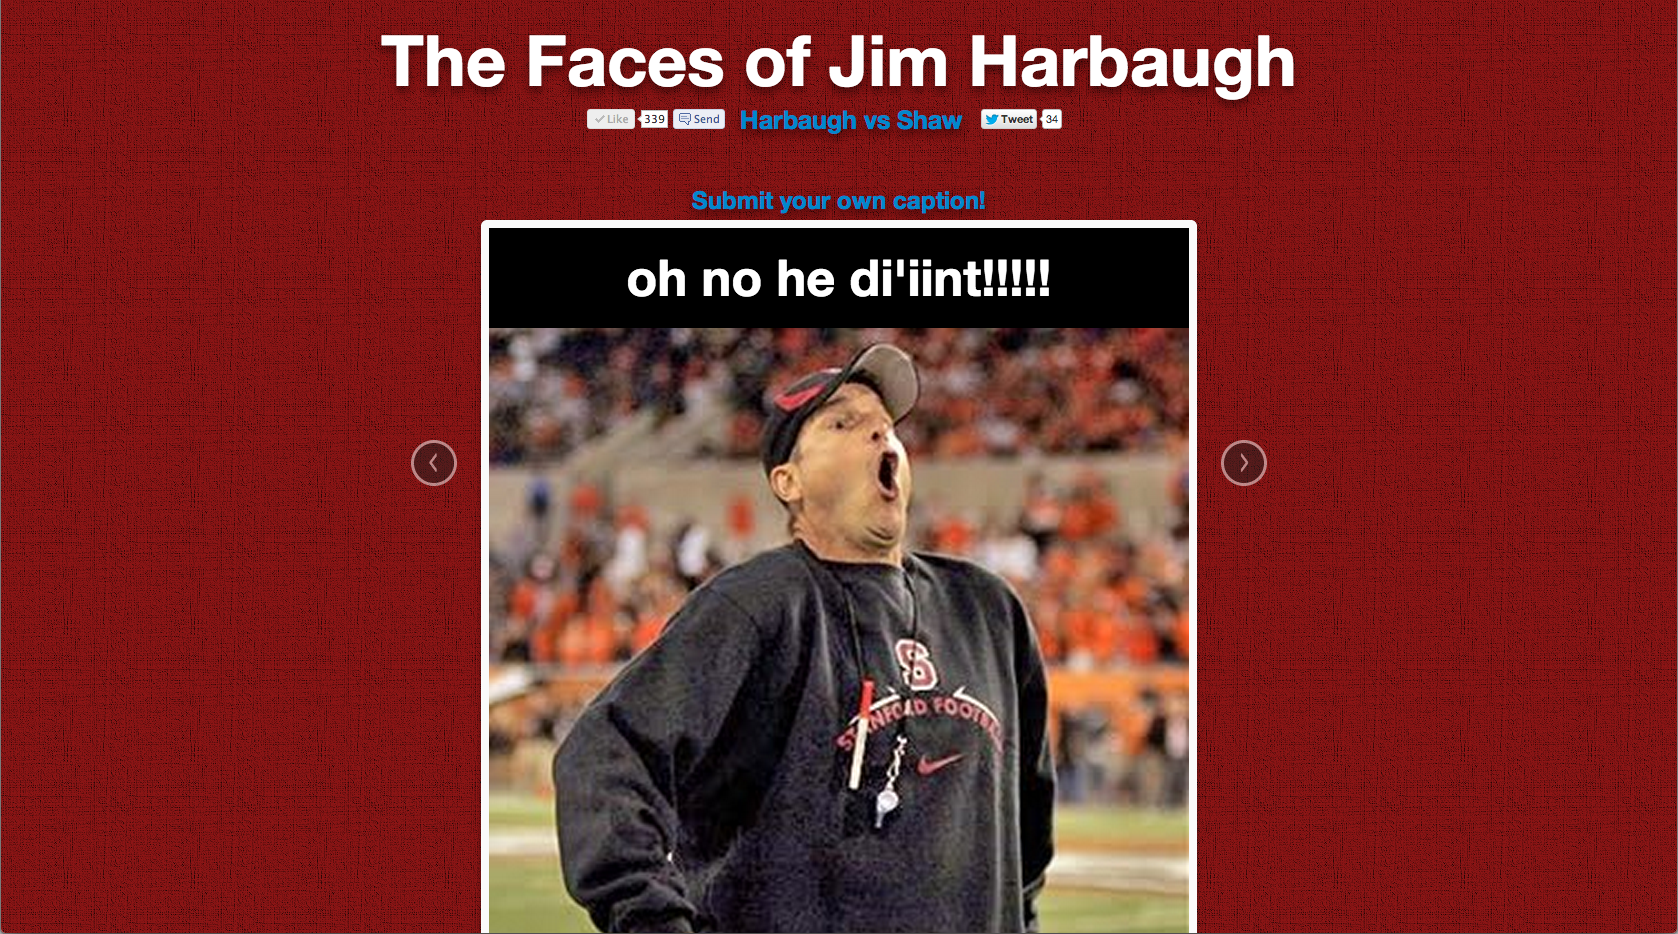 Faces of Harbaugh: Oh no he di'int!!!!!